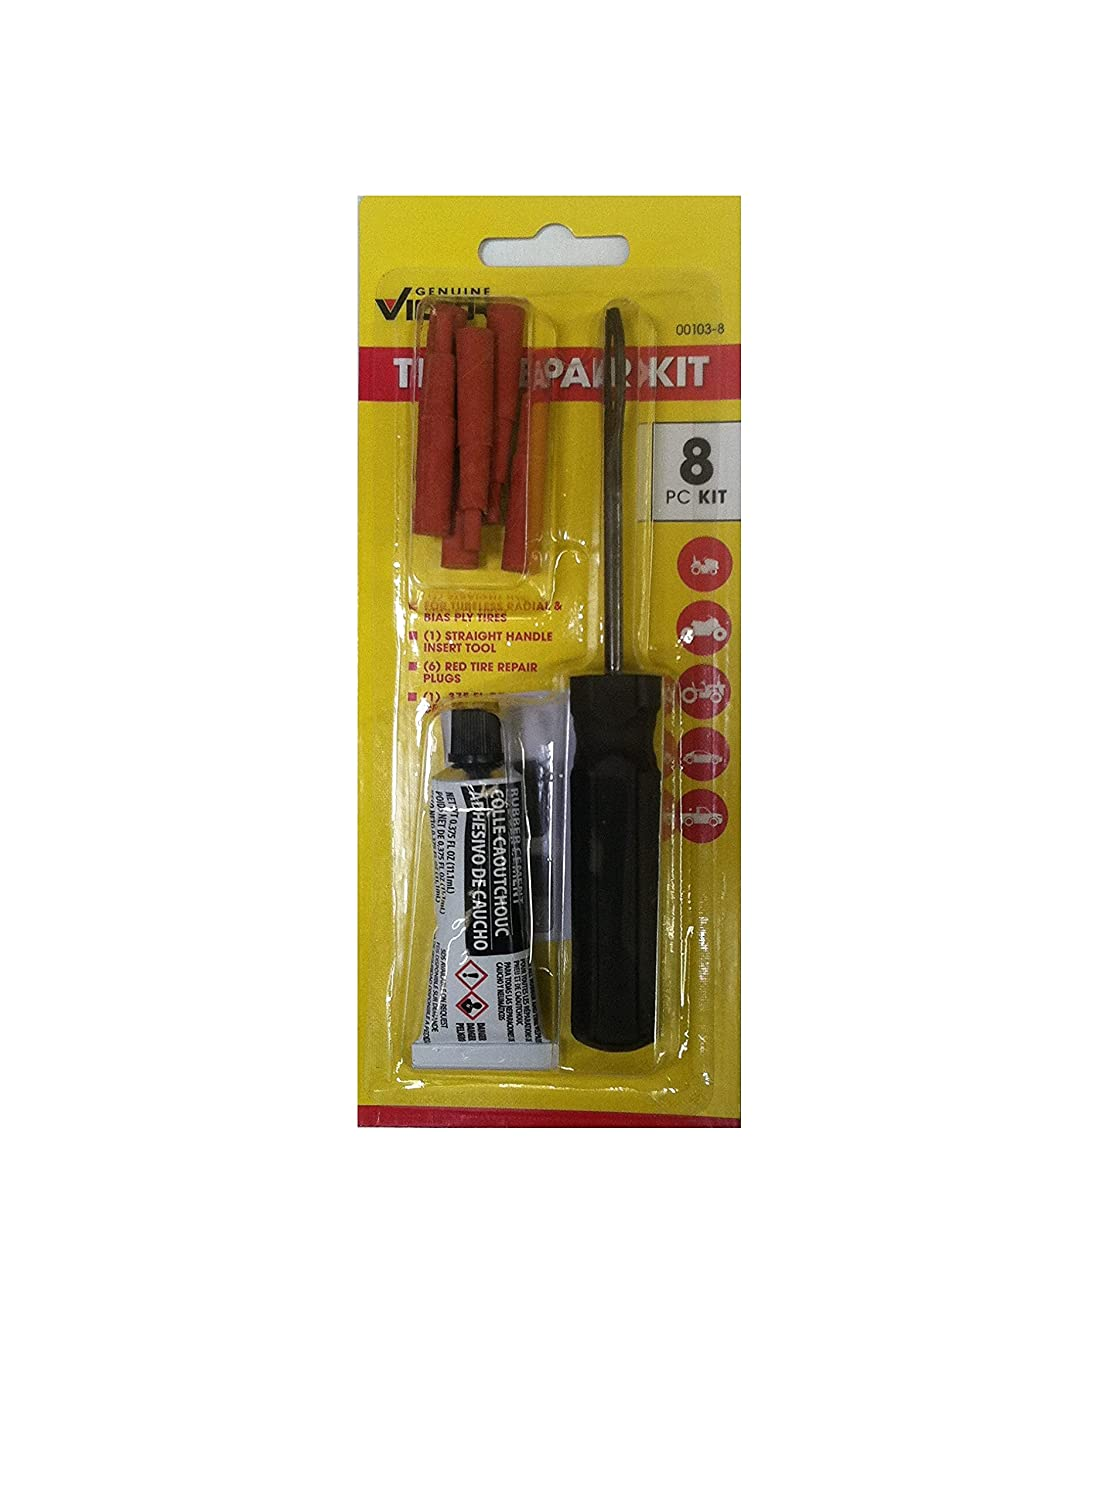 Victor Tire Repair Kit For Tubeless Houston Mall Tires Pieces Count 8 1 Many popular brands